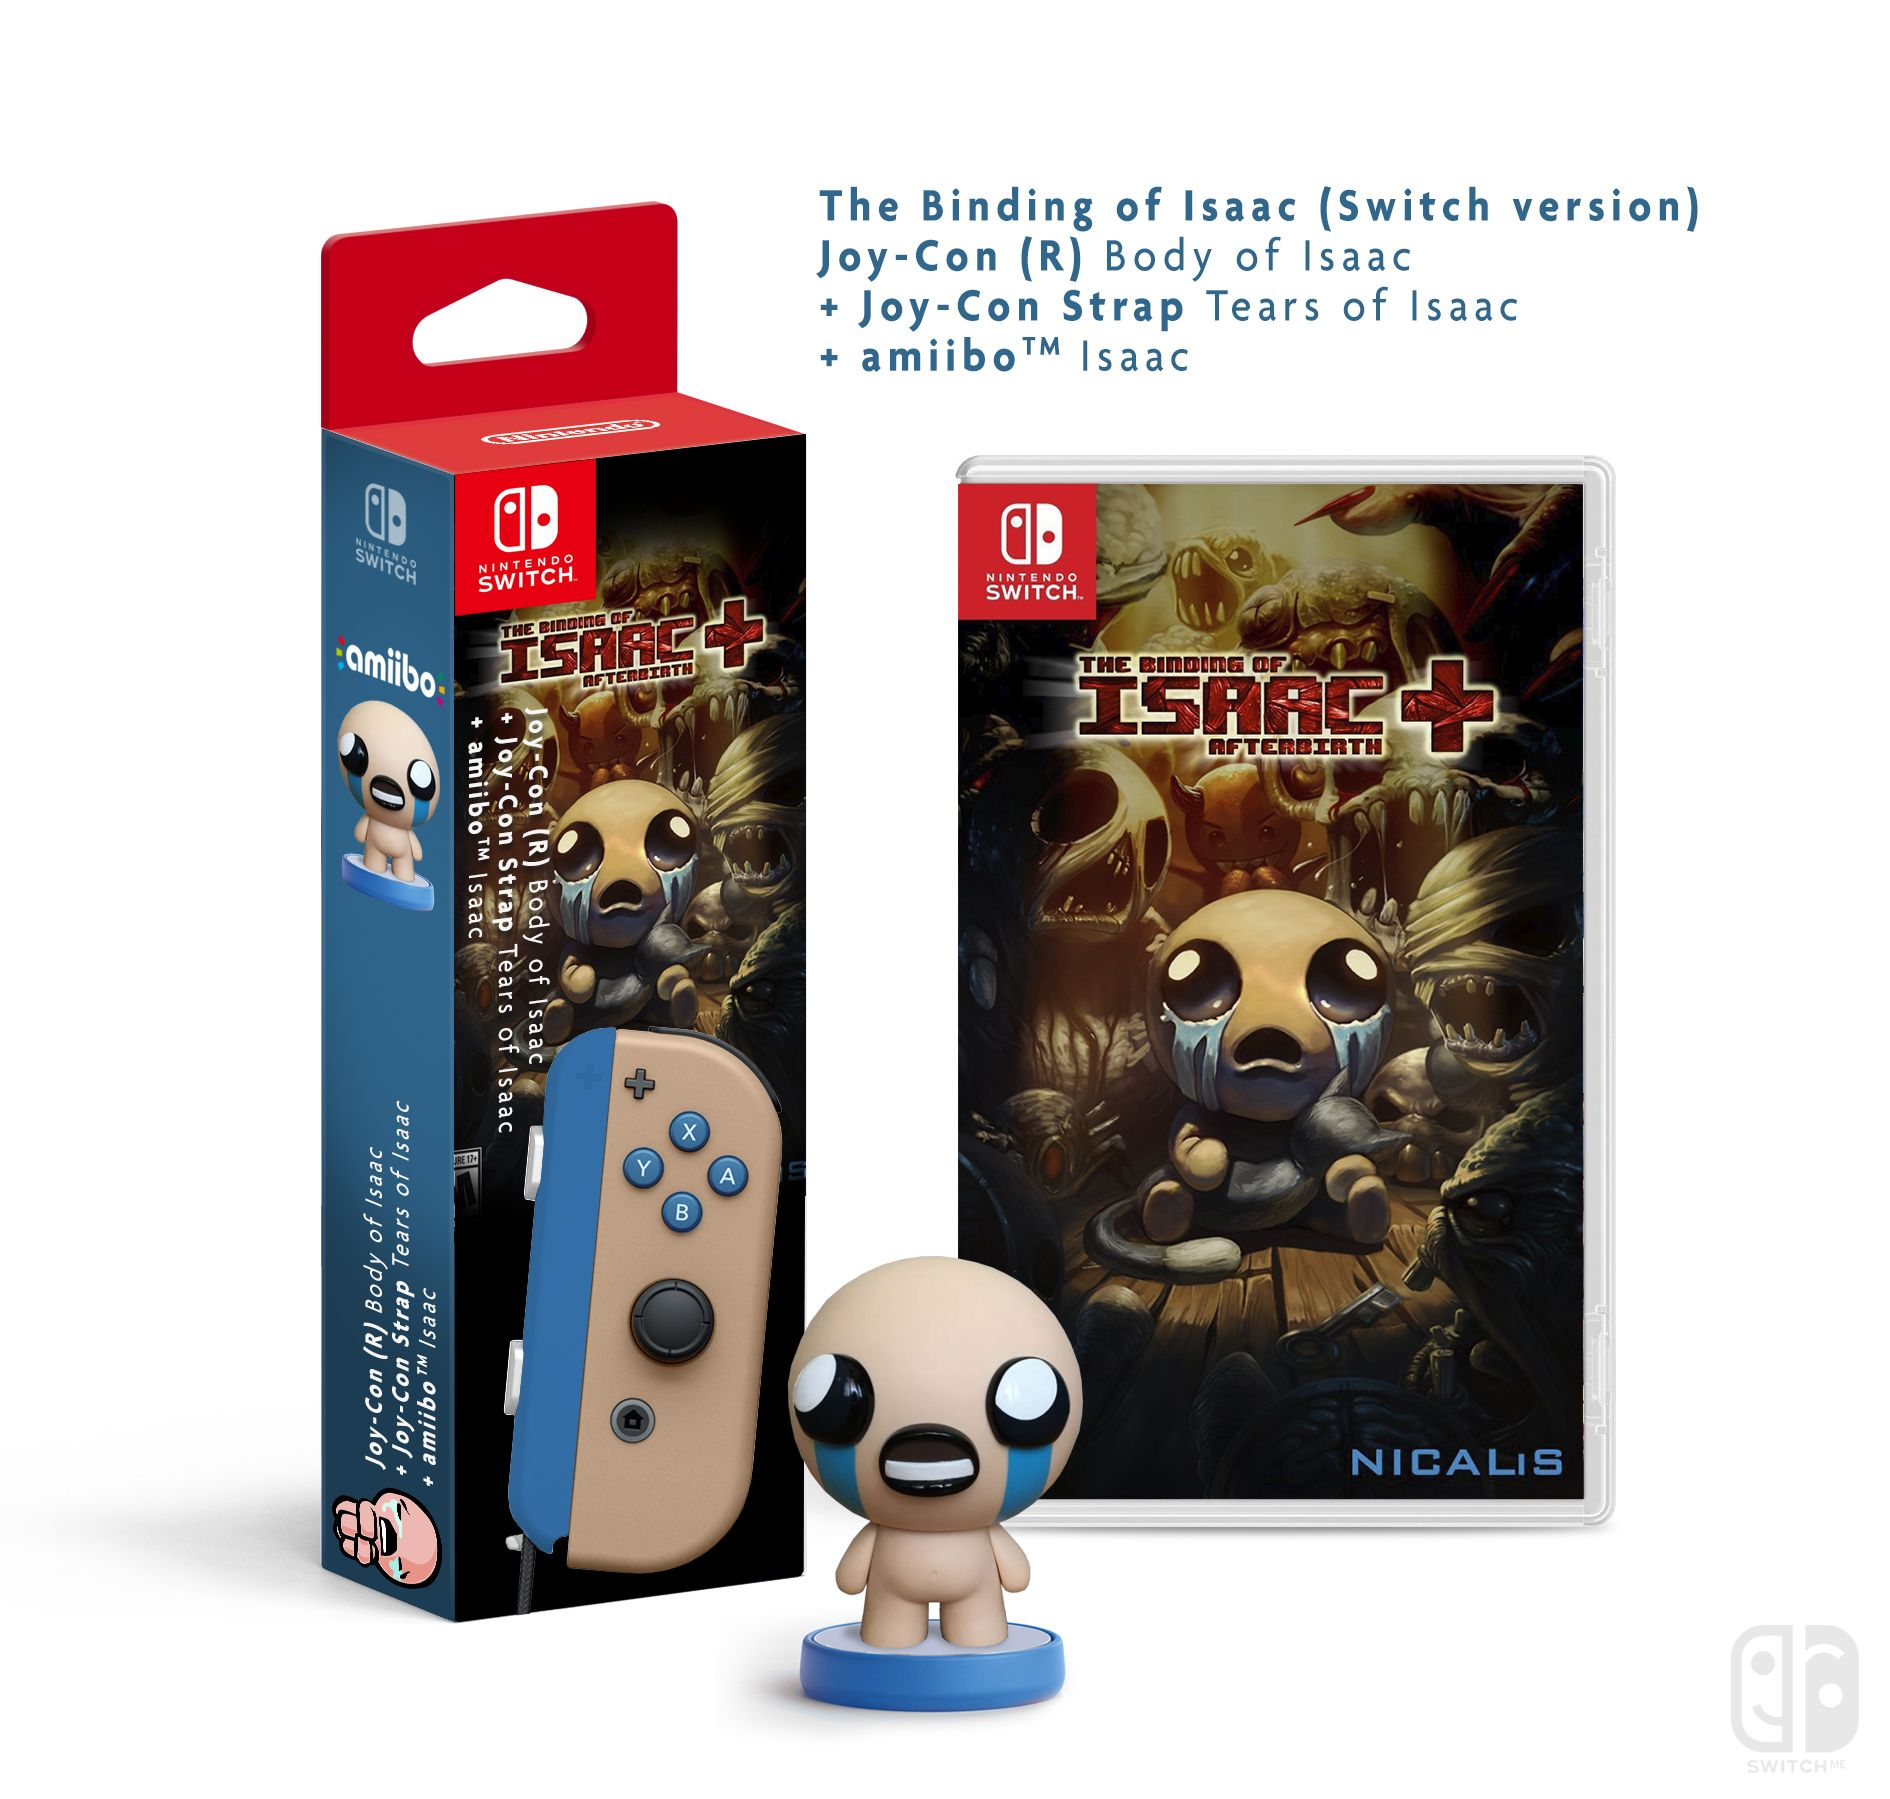 Joy-Con R The Binding Of Isaac + Game, Nintendo Joy-Con